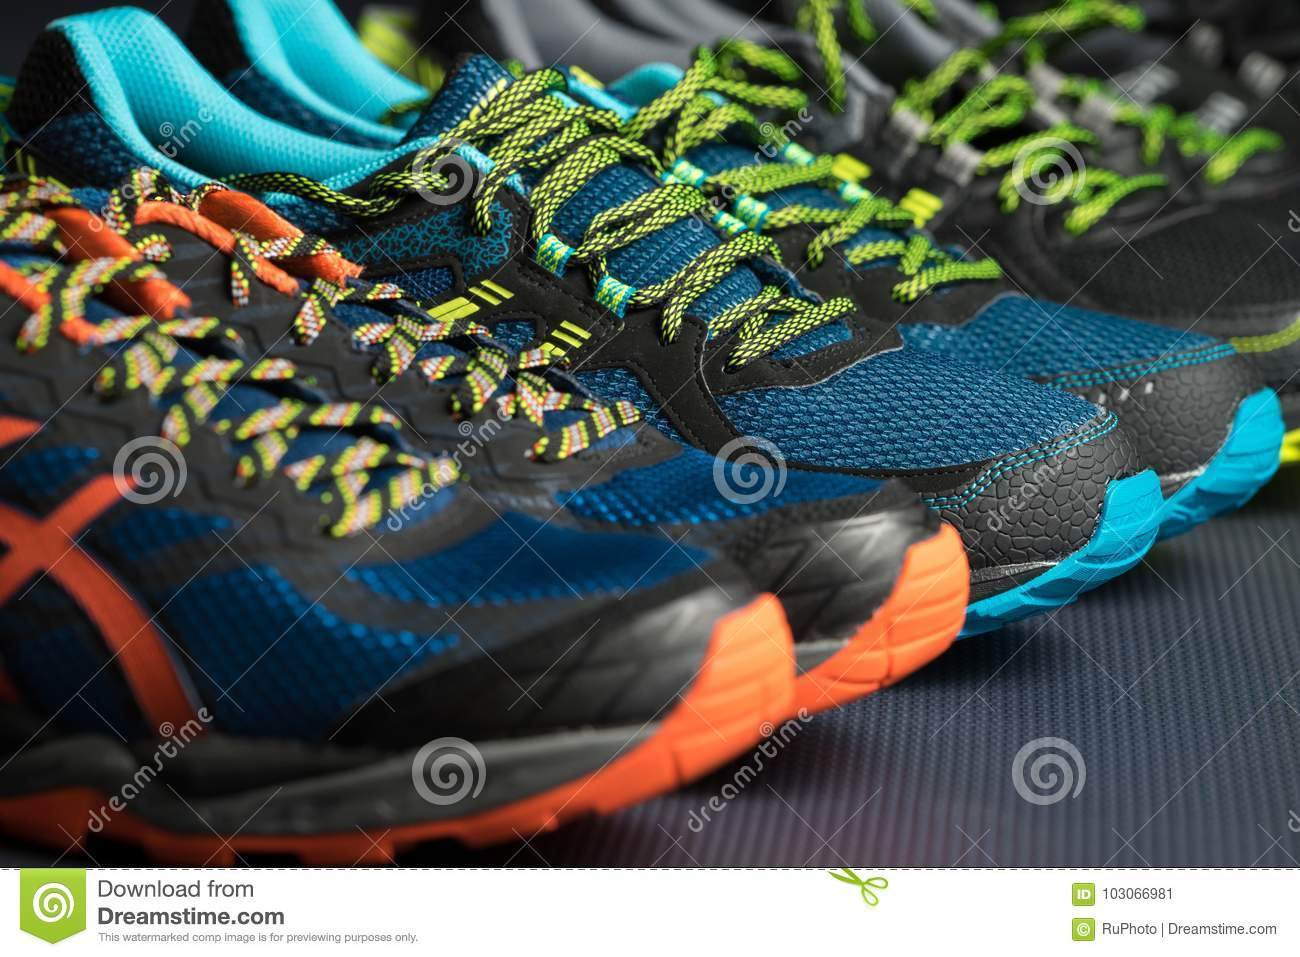 Three pairs of exercise trainers / running shoes on a gym floor